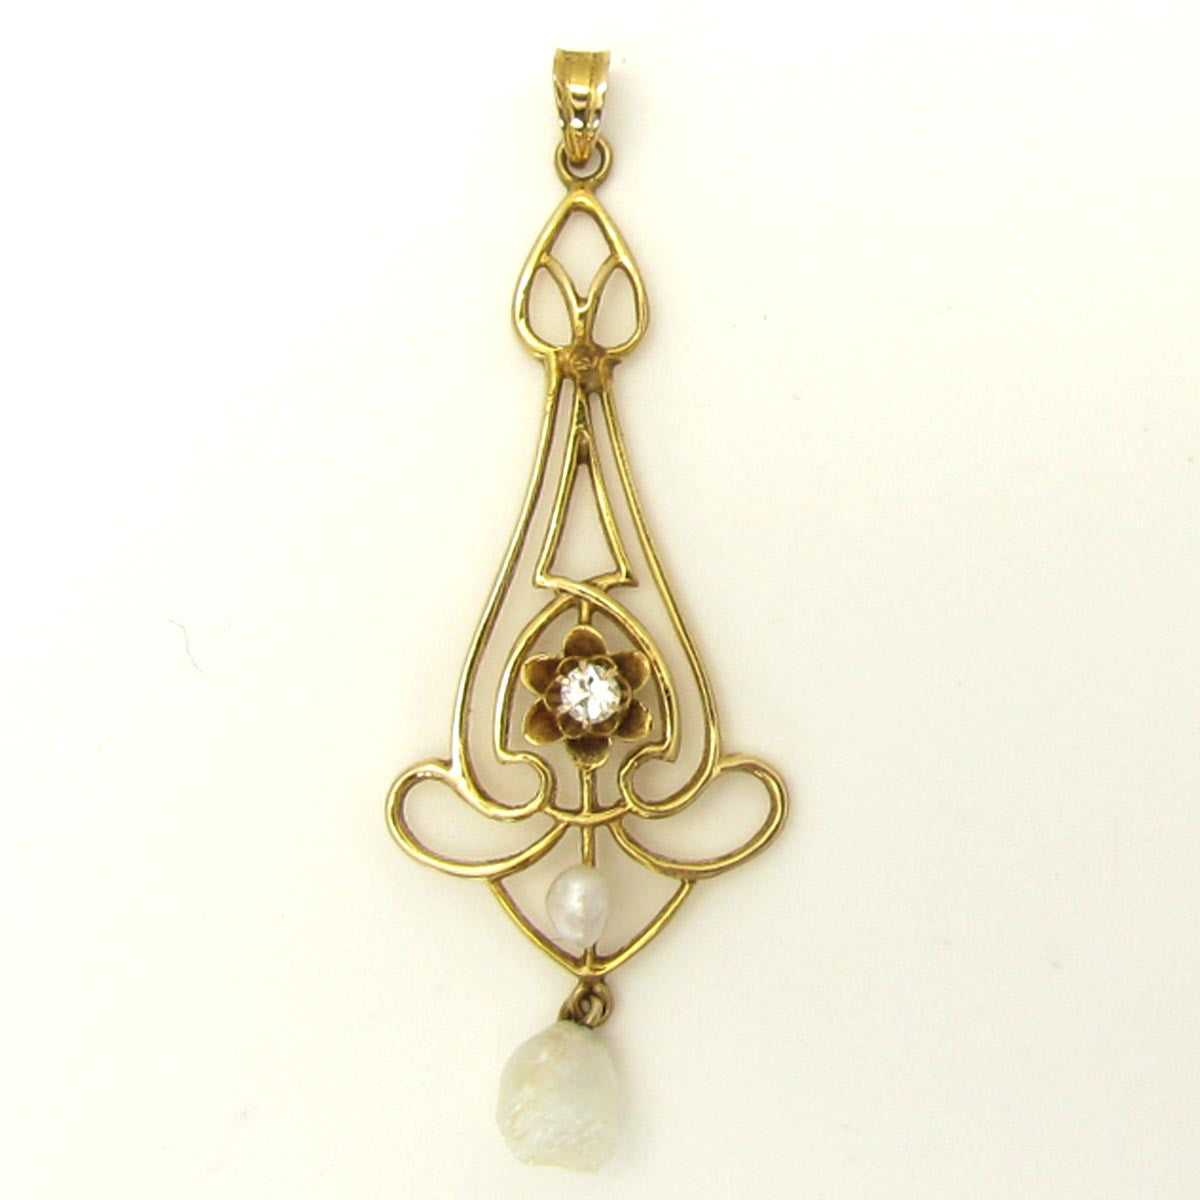 Antique Art Nouveau Diamond Necklace in Yellow Gold with Pearl